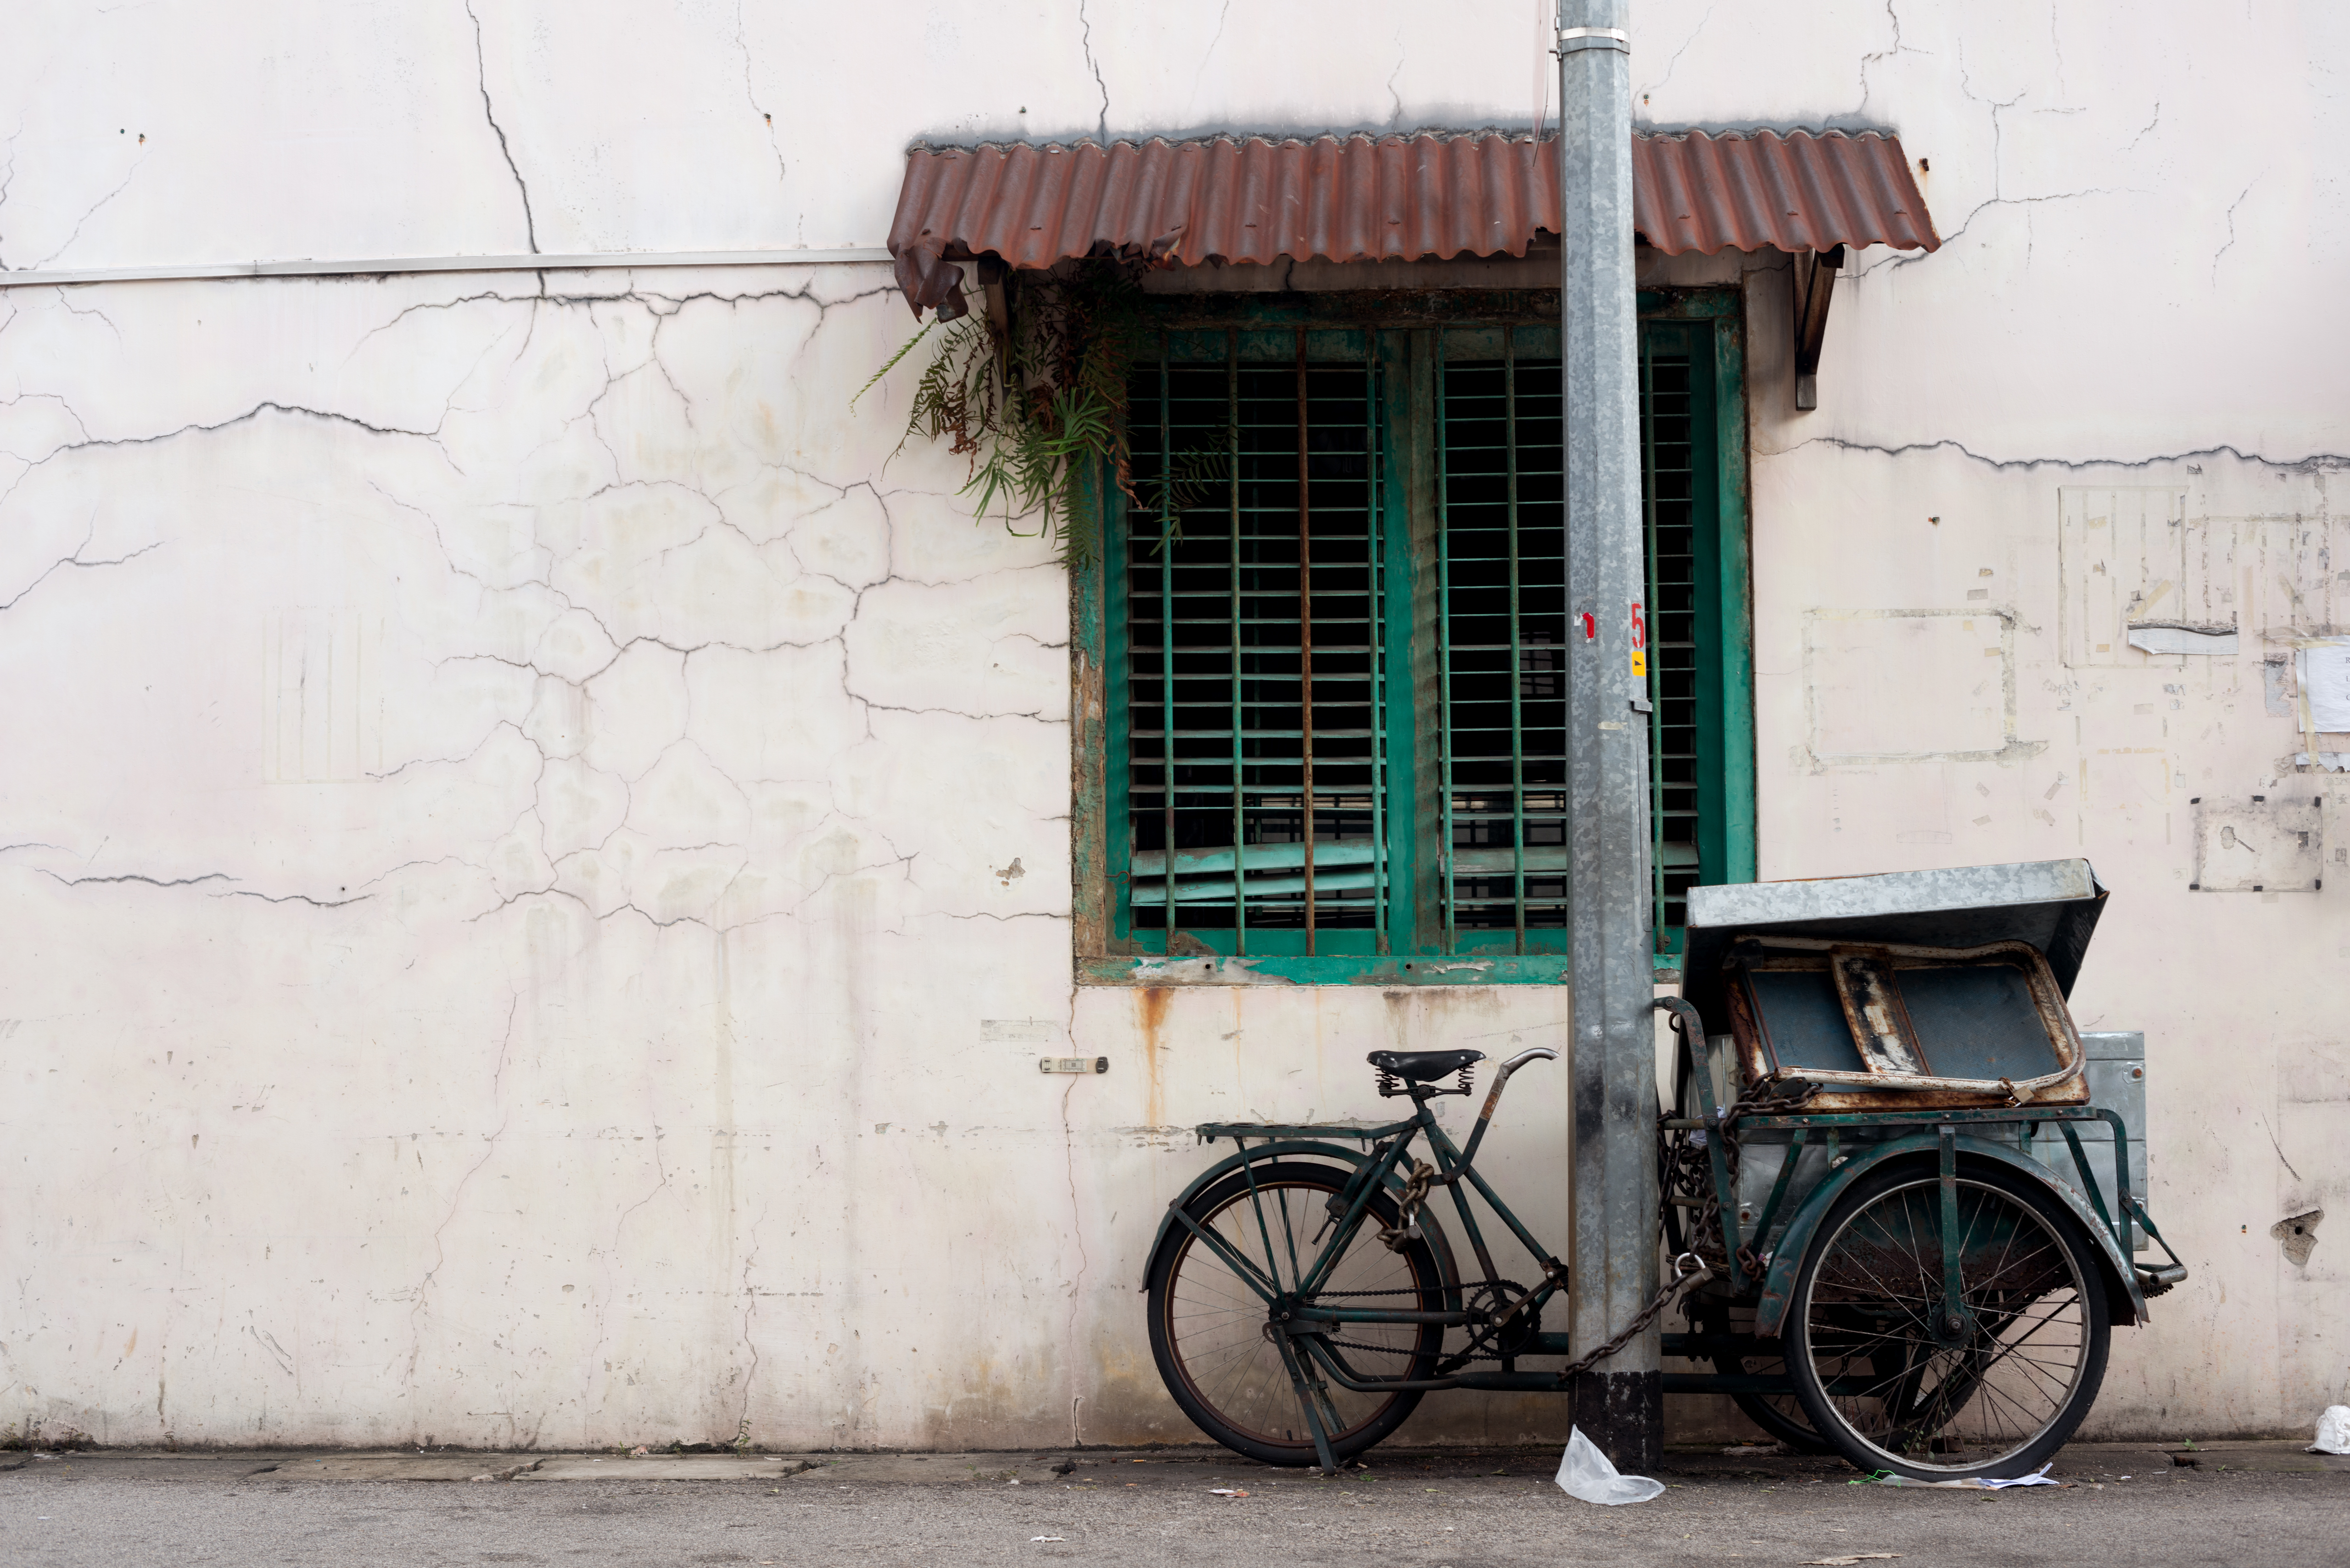 Old singaporean building with bike outside